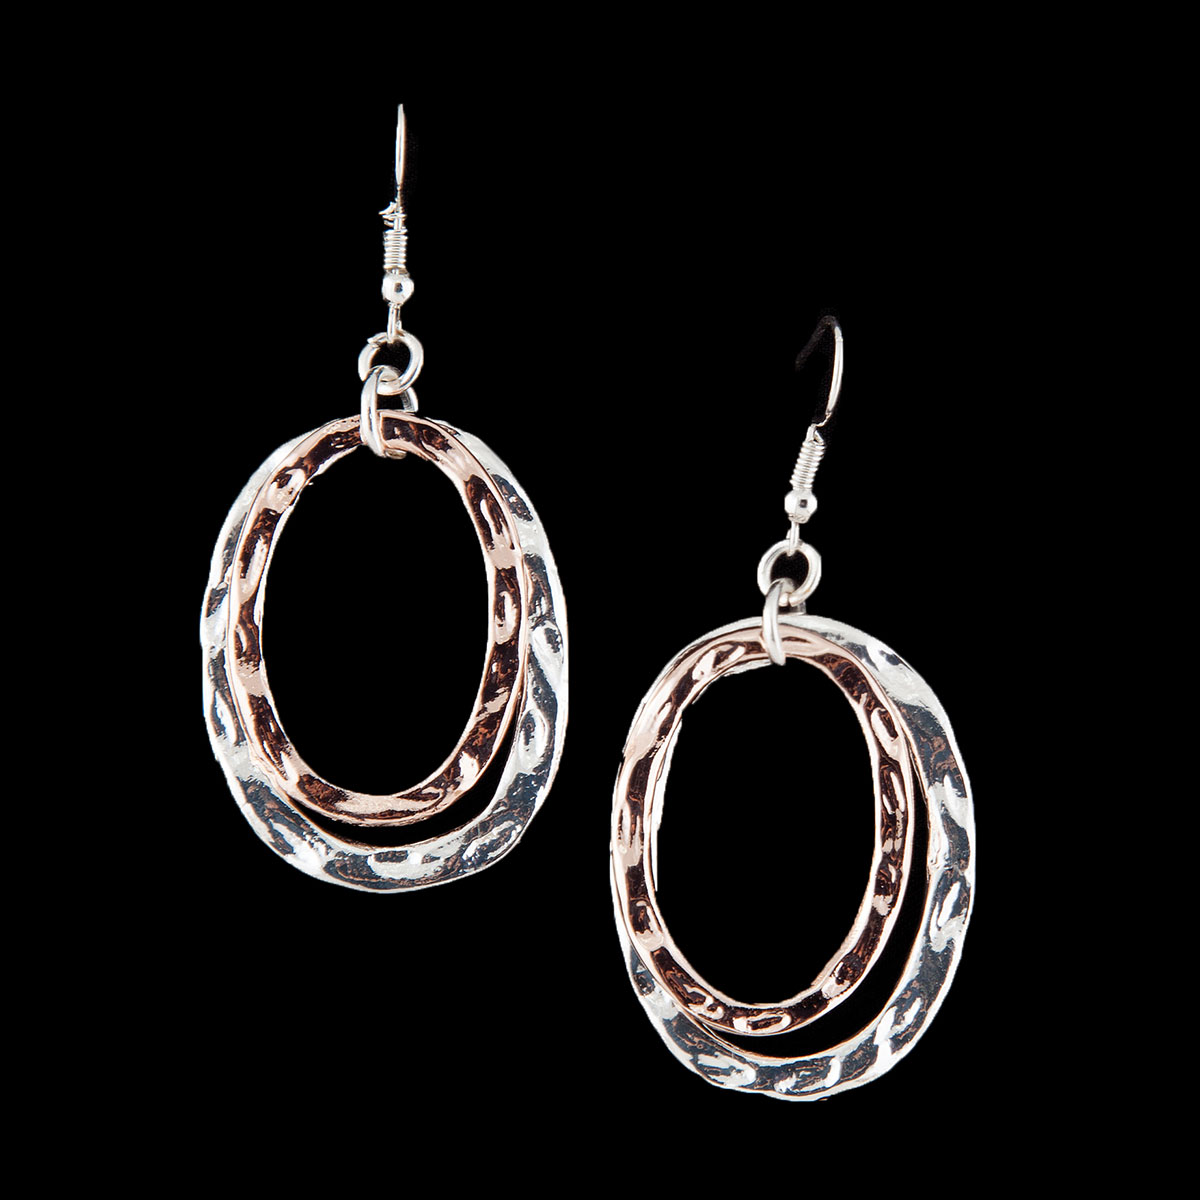 SI SINGLE HAMMERED OVAL EARRINGS